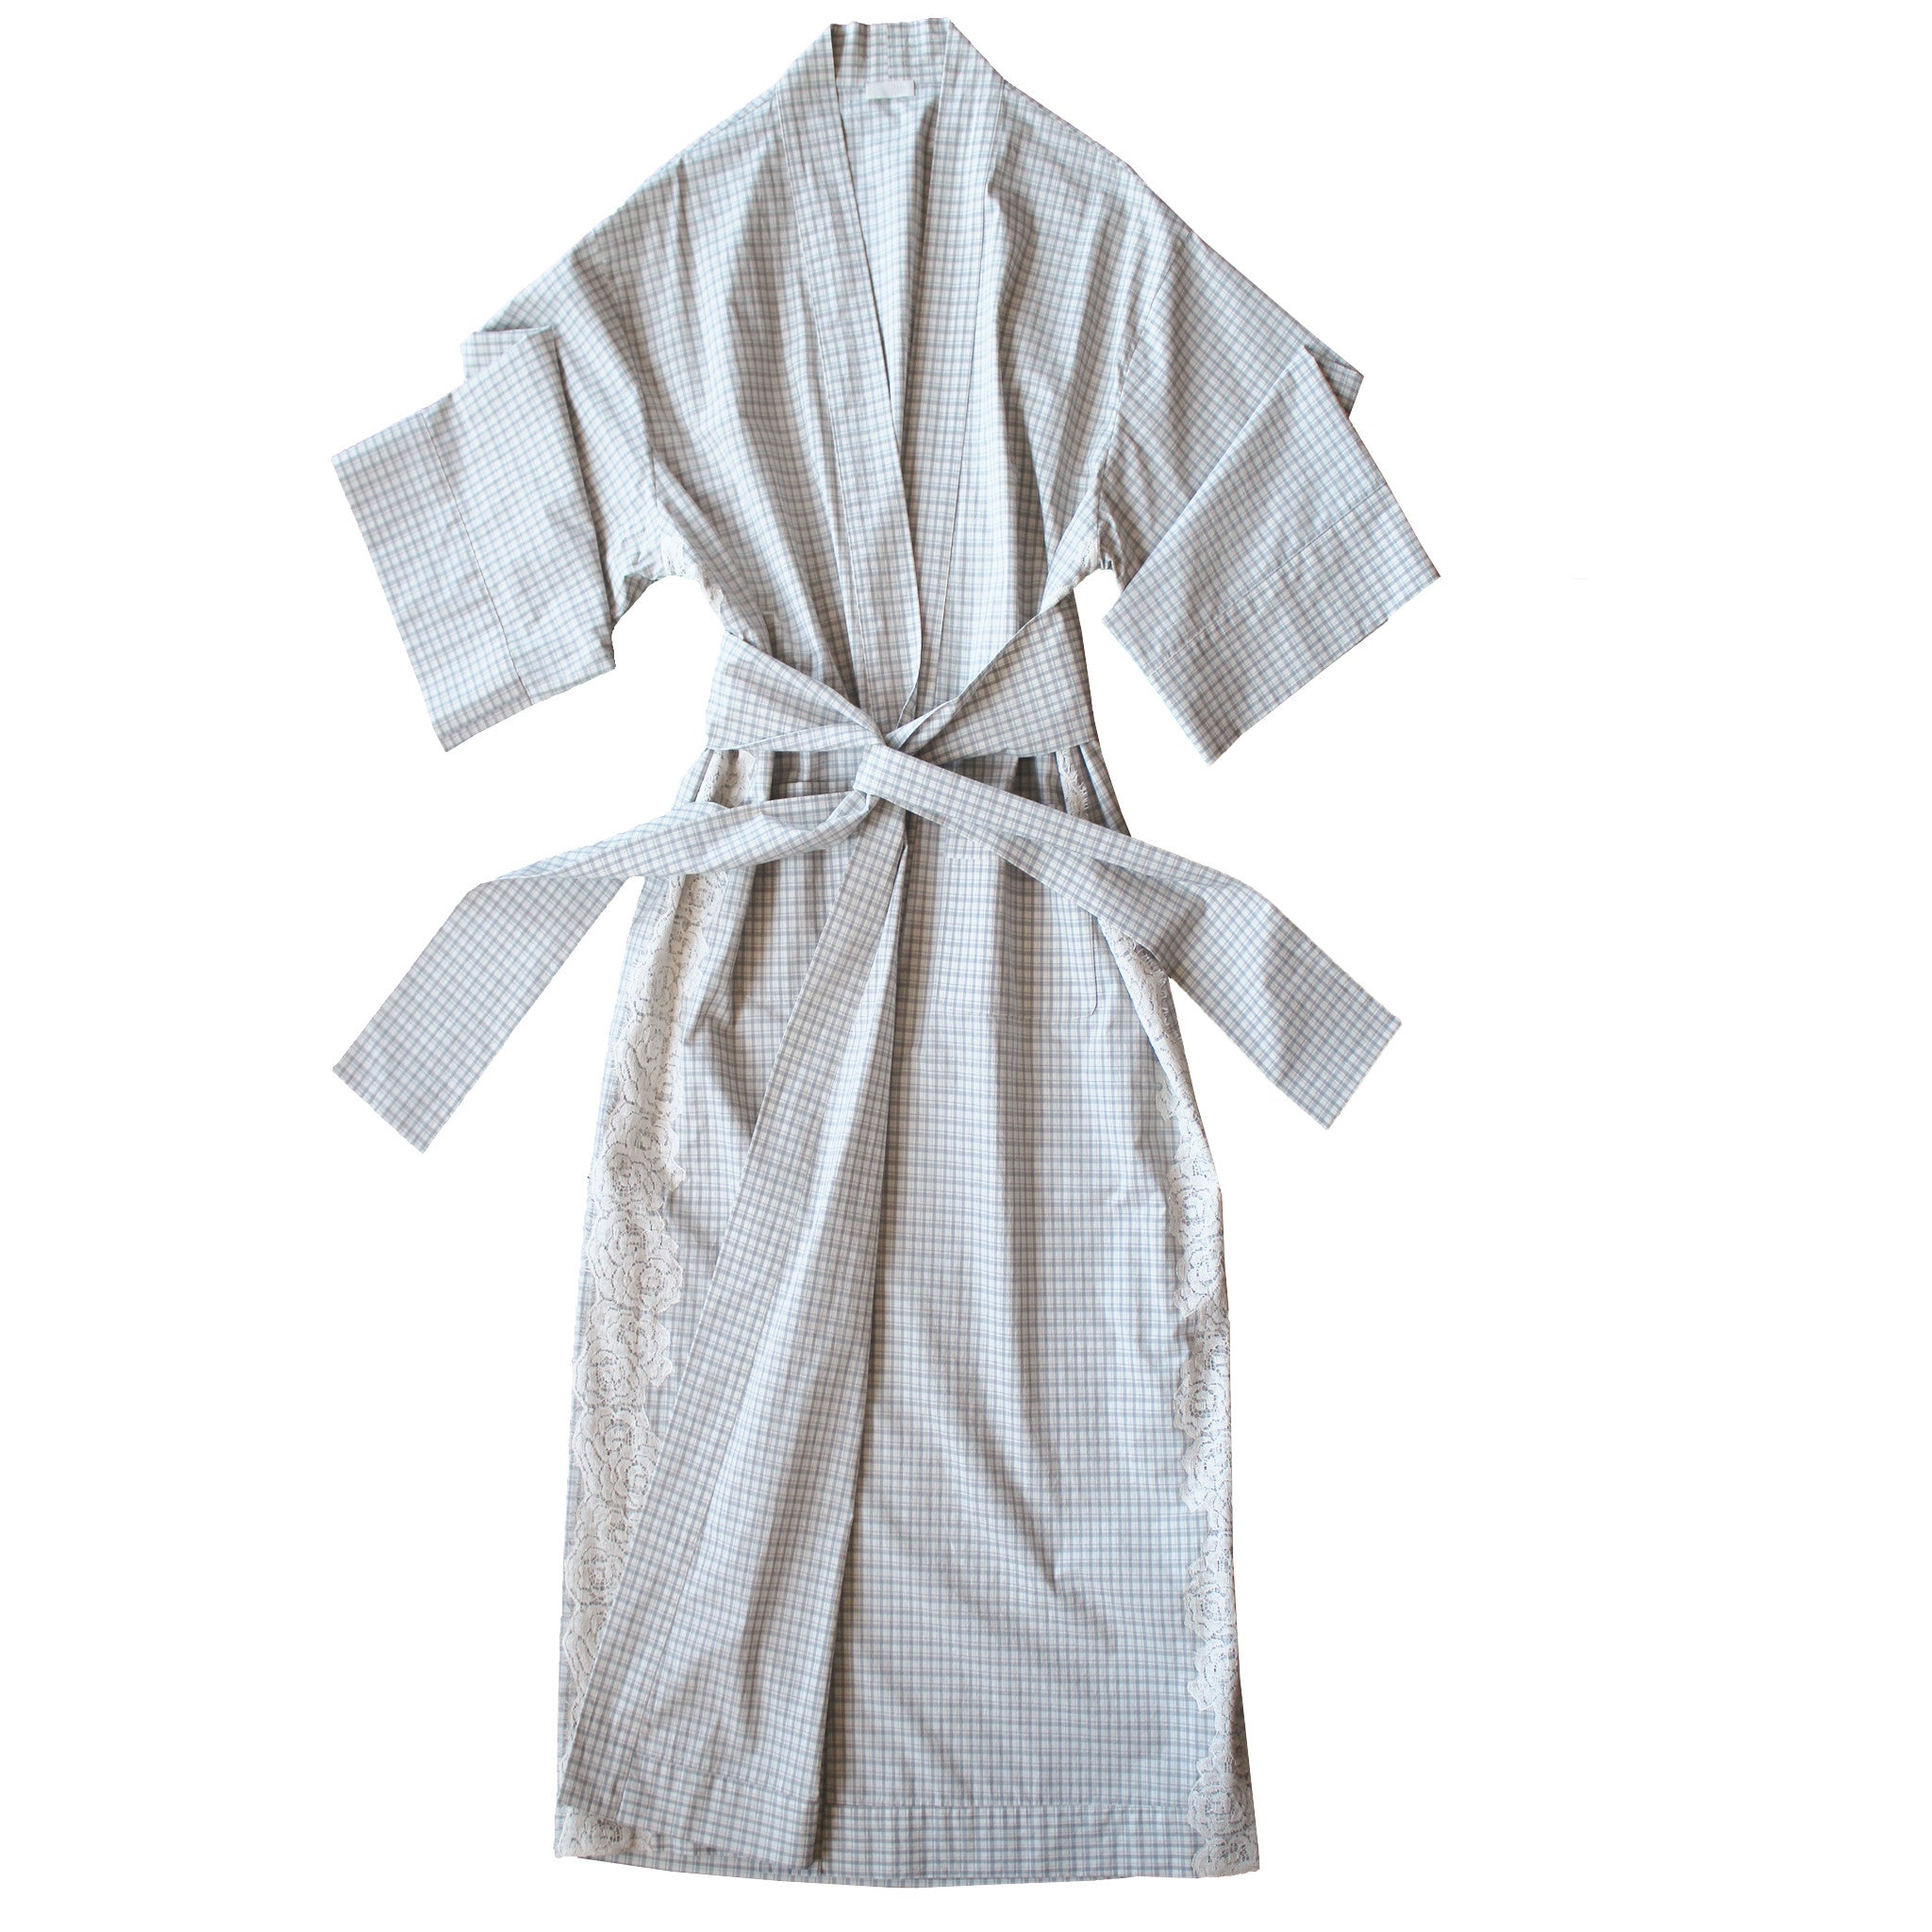 Asteria Kimono Robe in Italian Cotton Taupe Ivory Check